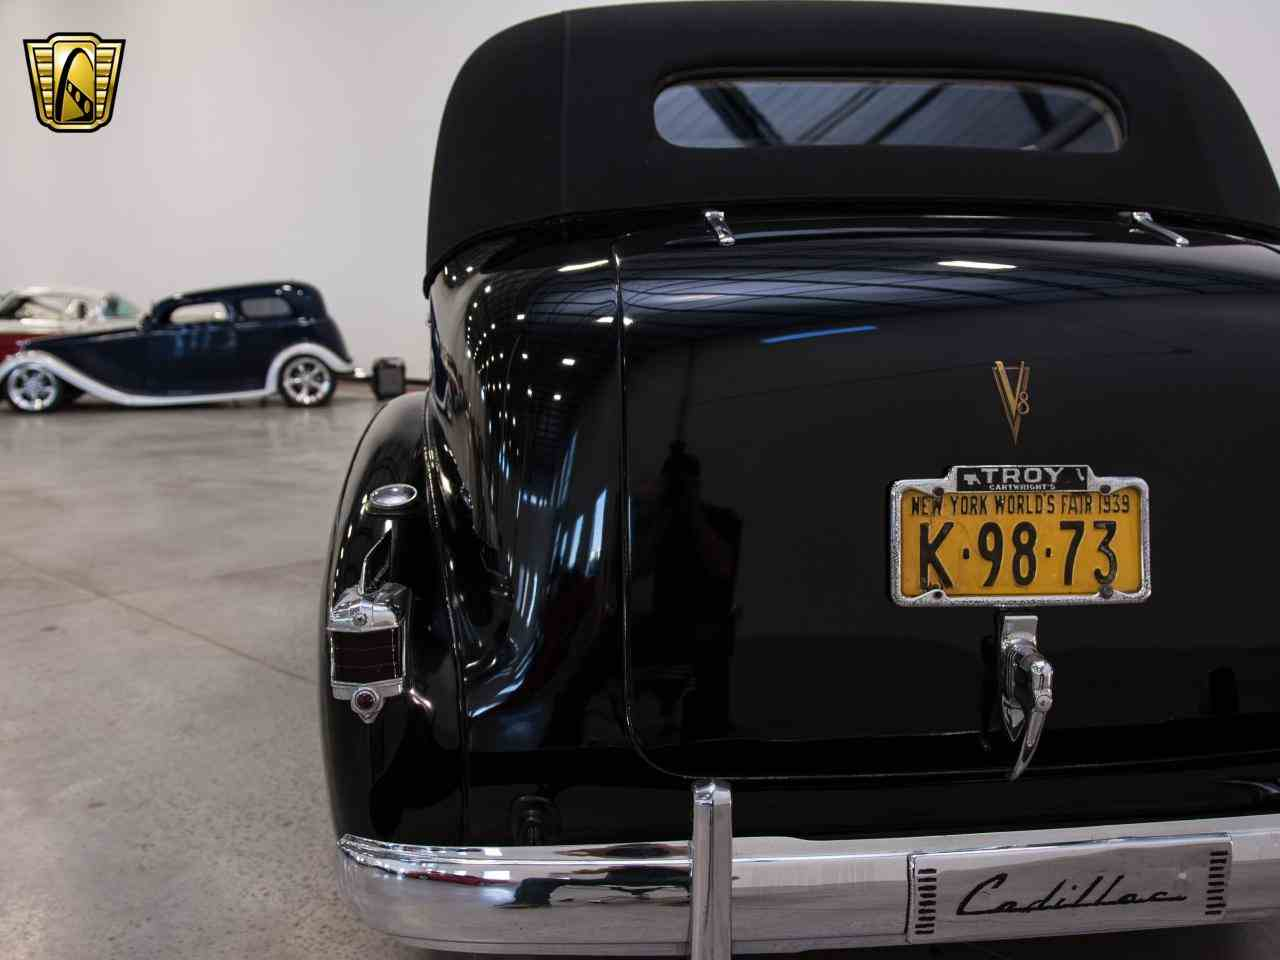 Large Picture of Classic '39 Cadillac 7 Passenger Touring W/ Trunk located in Wisconsin Offered by Gateway Classic Cars - Milwaukee - KHP0